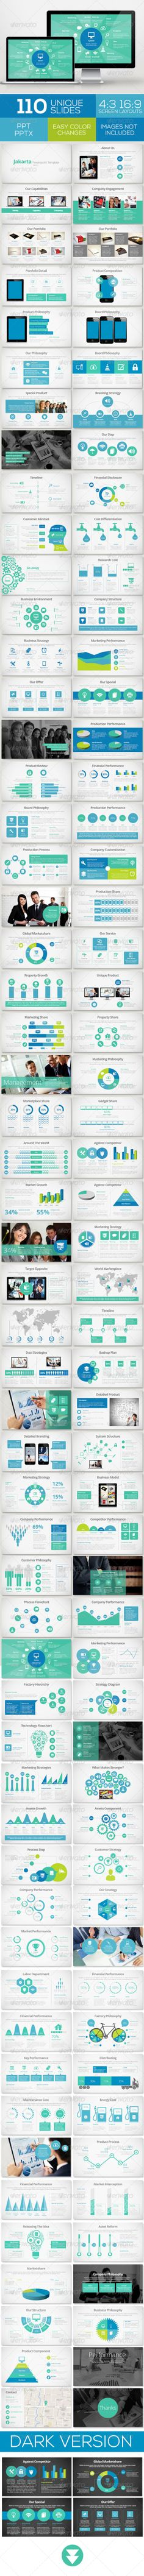 First goal powerpoint template by zacomic studios on first goal powerpoint template by zacomic studios on creativemarket resakss1 pinterest studios nice and trends alramifo Image collections